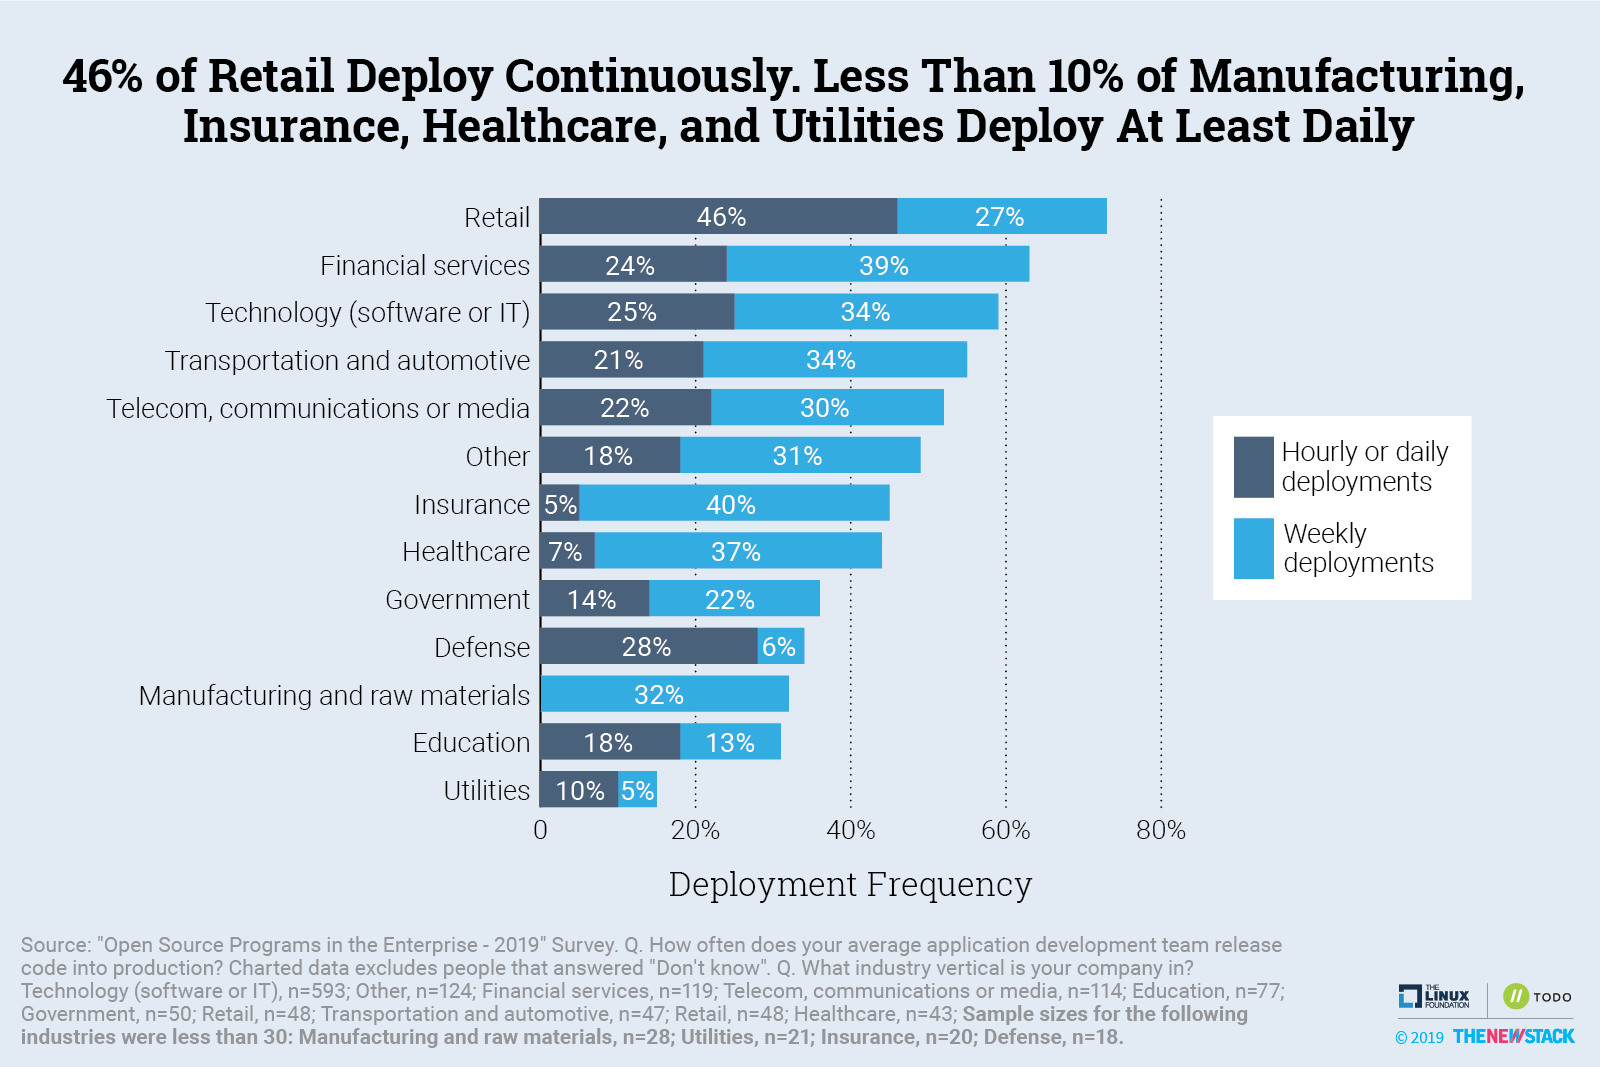 46% of Retail Firms Deploy Continuously. Less than 10% of Manufacturing, Insurance, Healthcare, and Utilities Deploy At Least Daily